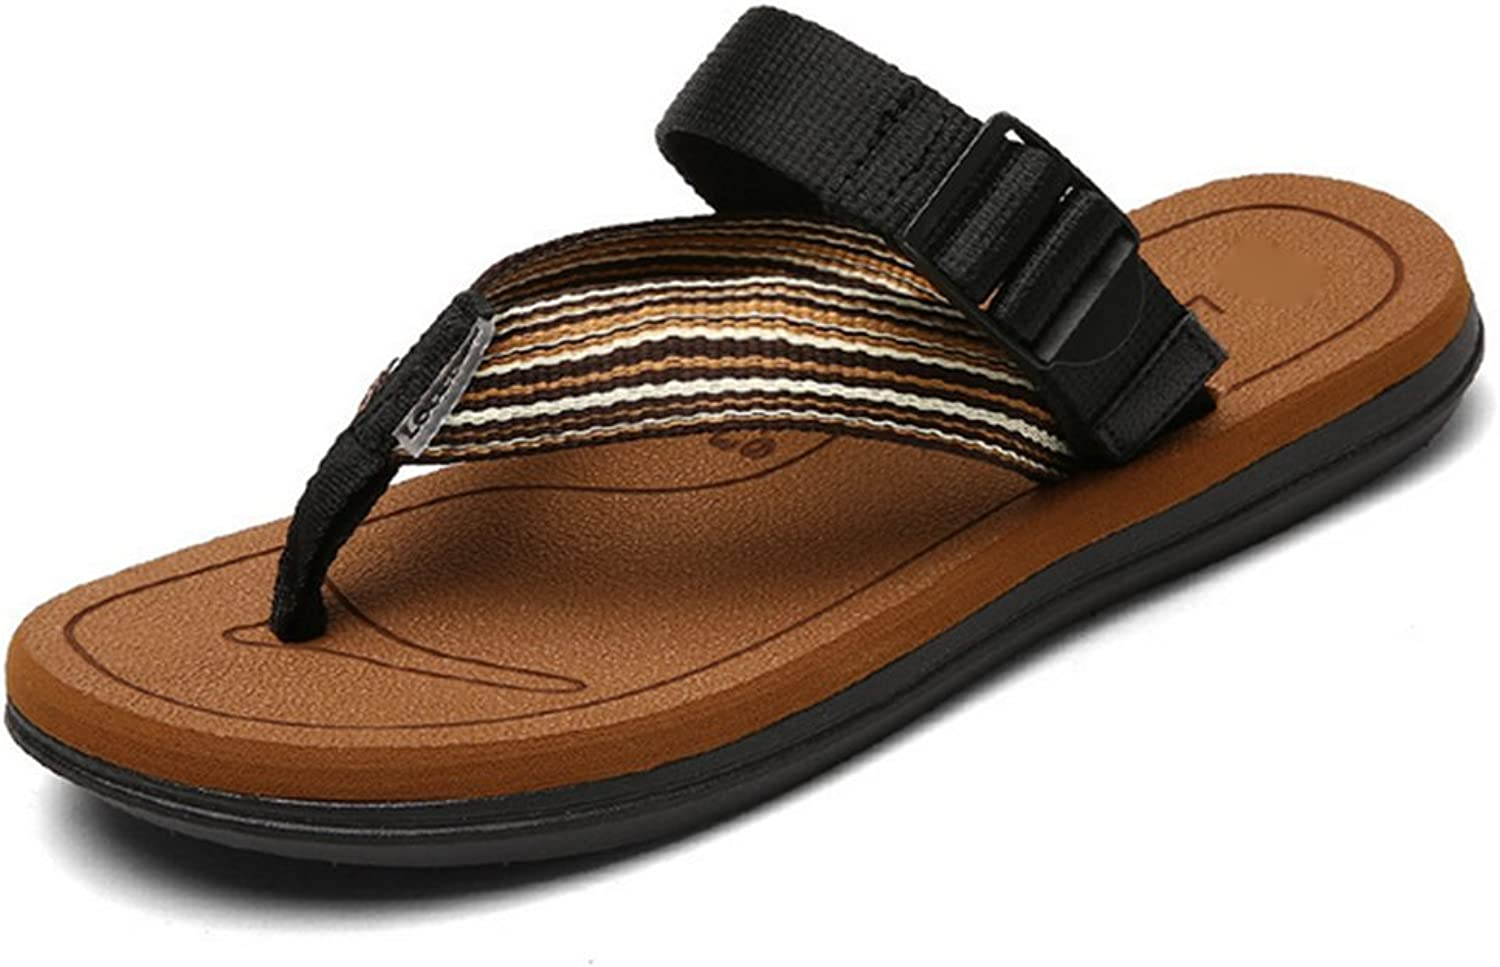 Weiwei Casual Flat Sandals in The Summer,Beach Roman Style Slippers